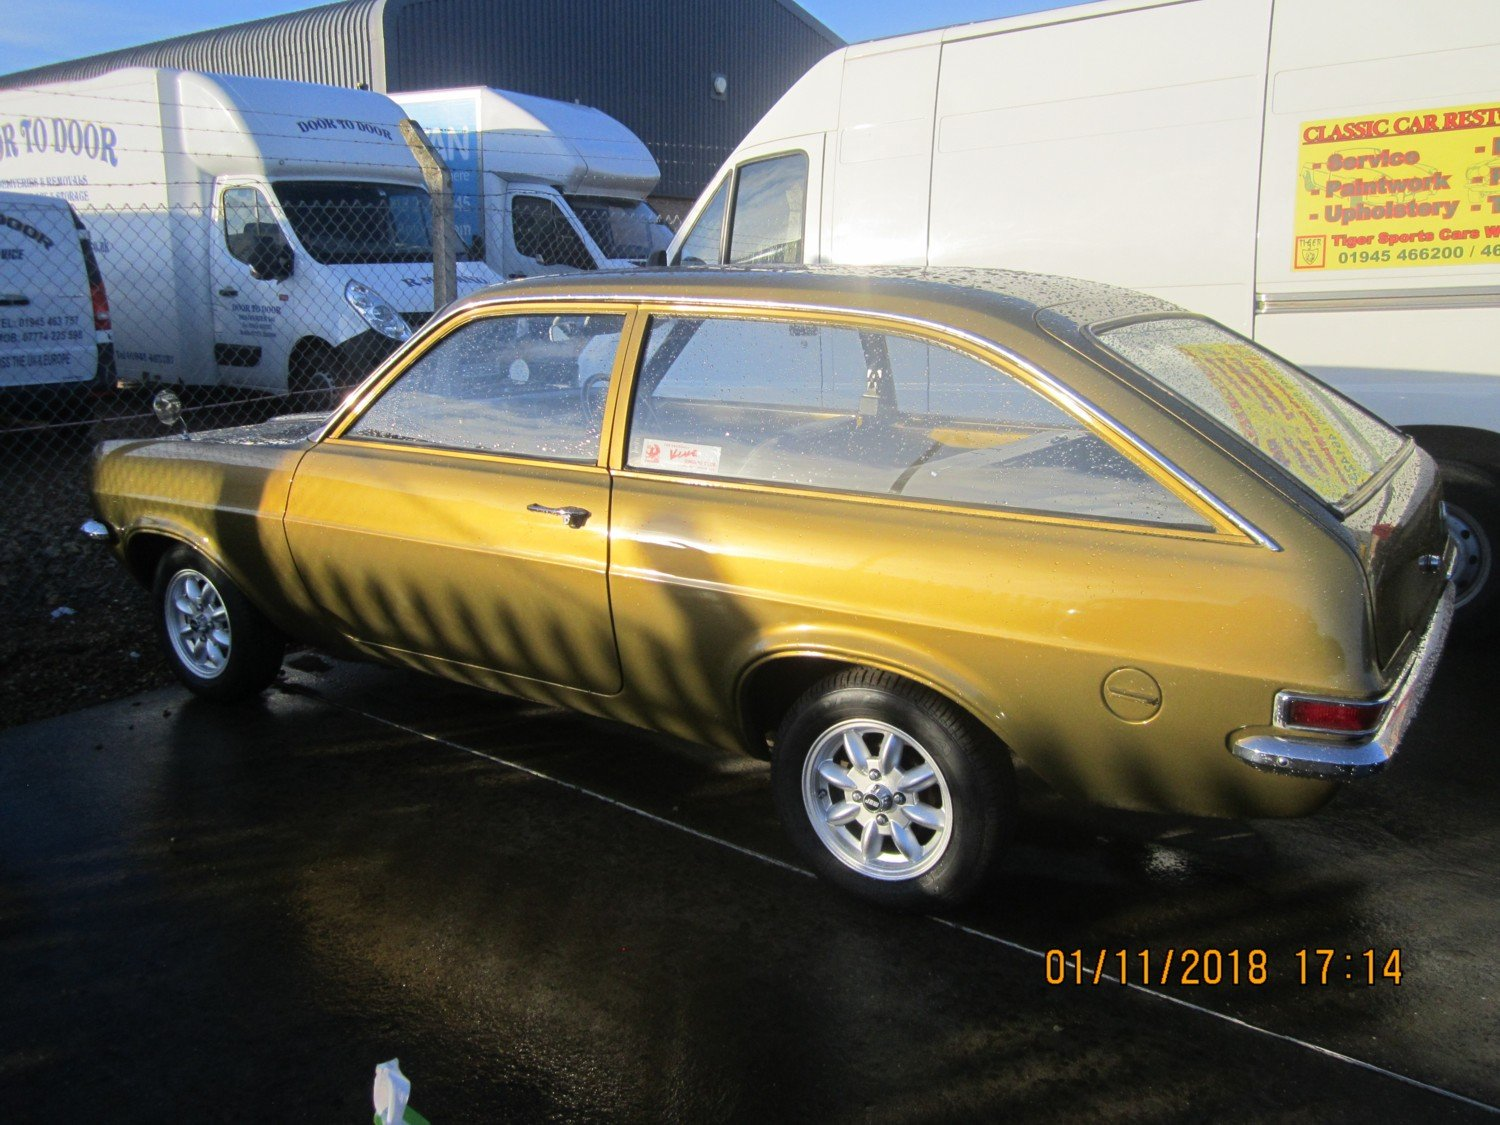 1973 Viva estate reduced For Sale (picture 2 of 6)